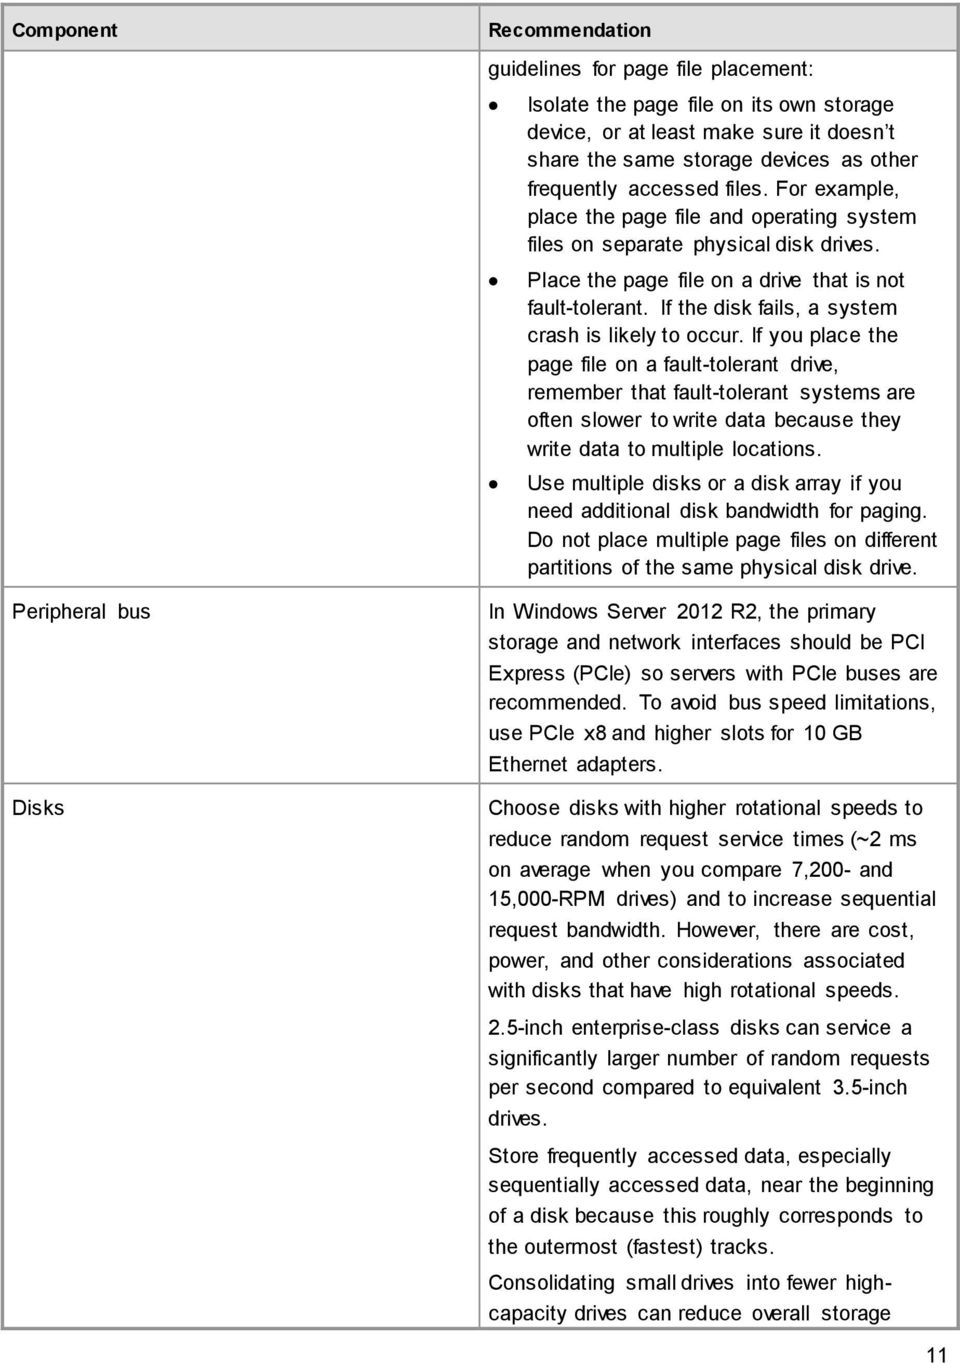 Performance Tuning Guidelines for Windows Server 2012 R2 - PDF